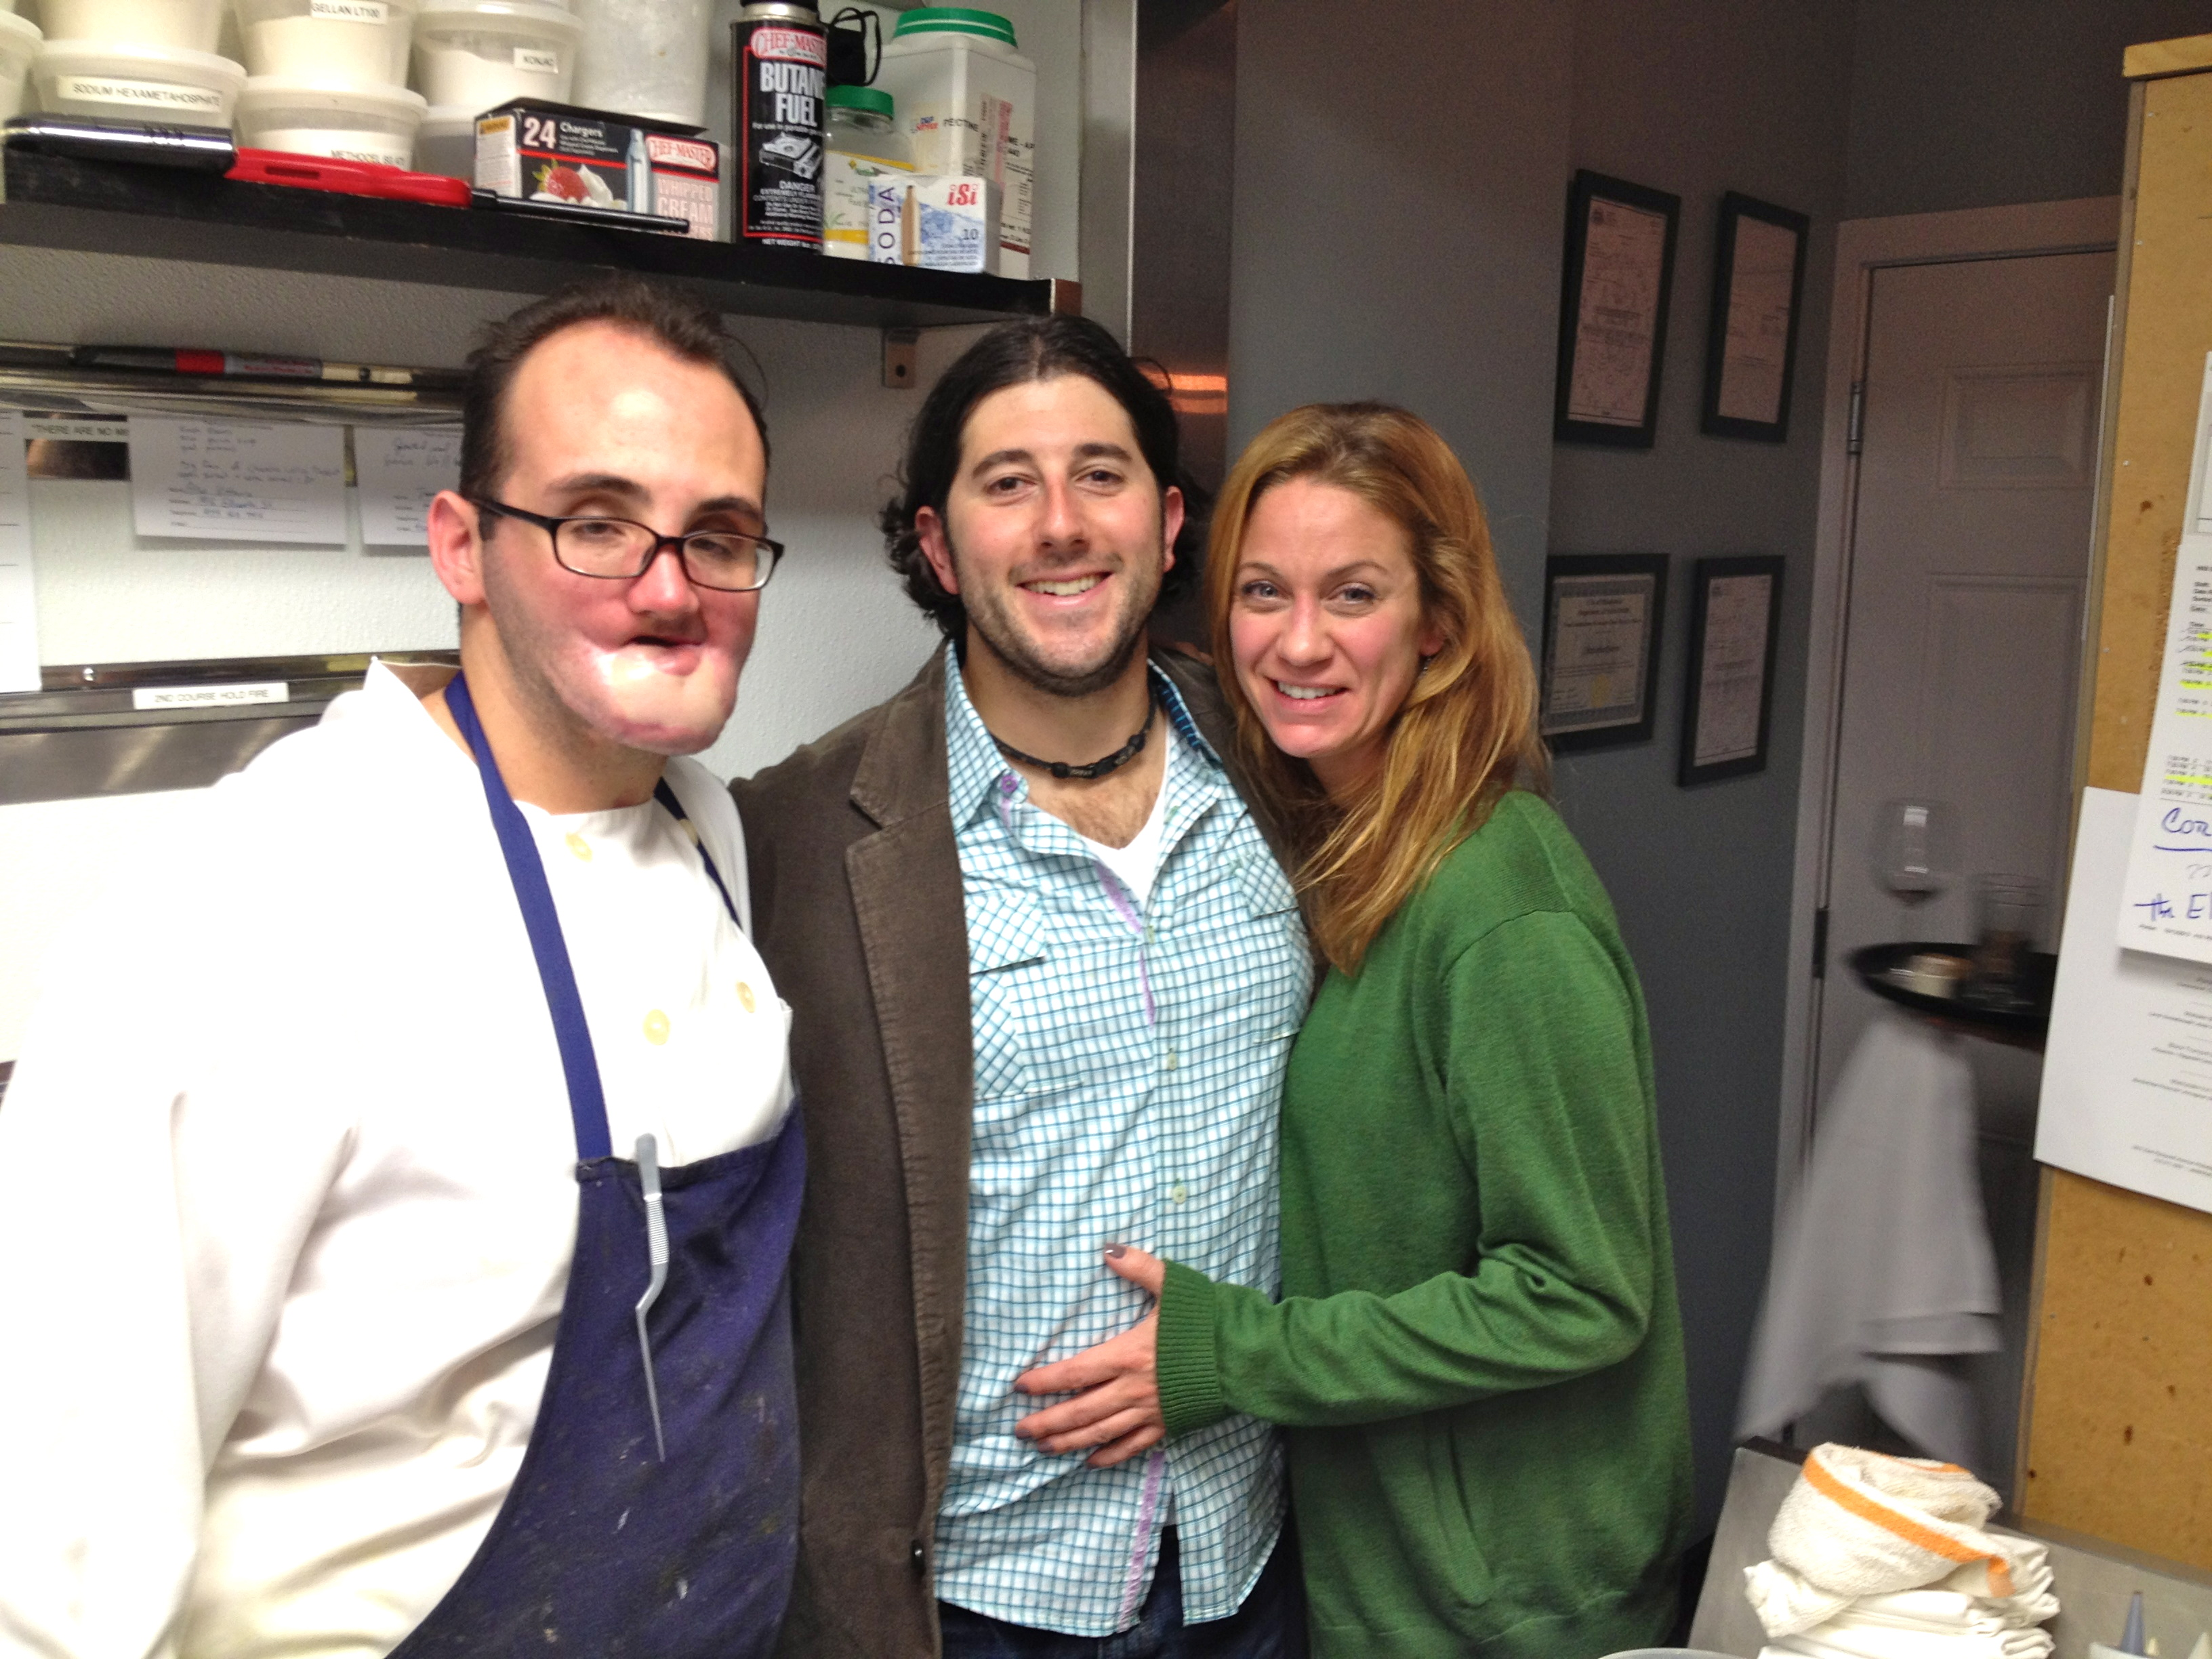 Will BYOB Owner/Chef Christopher Kearse, CCM's Lee Porter & Suzanne Allaire (Will BYOB's Kitchen)